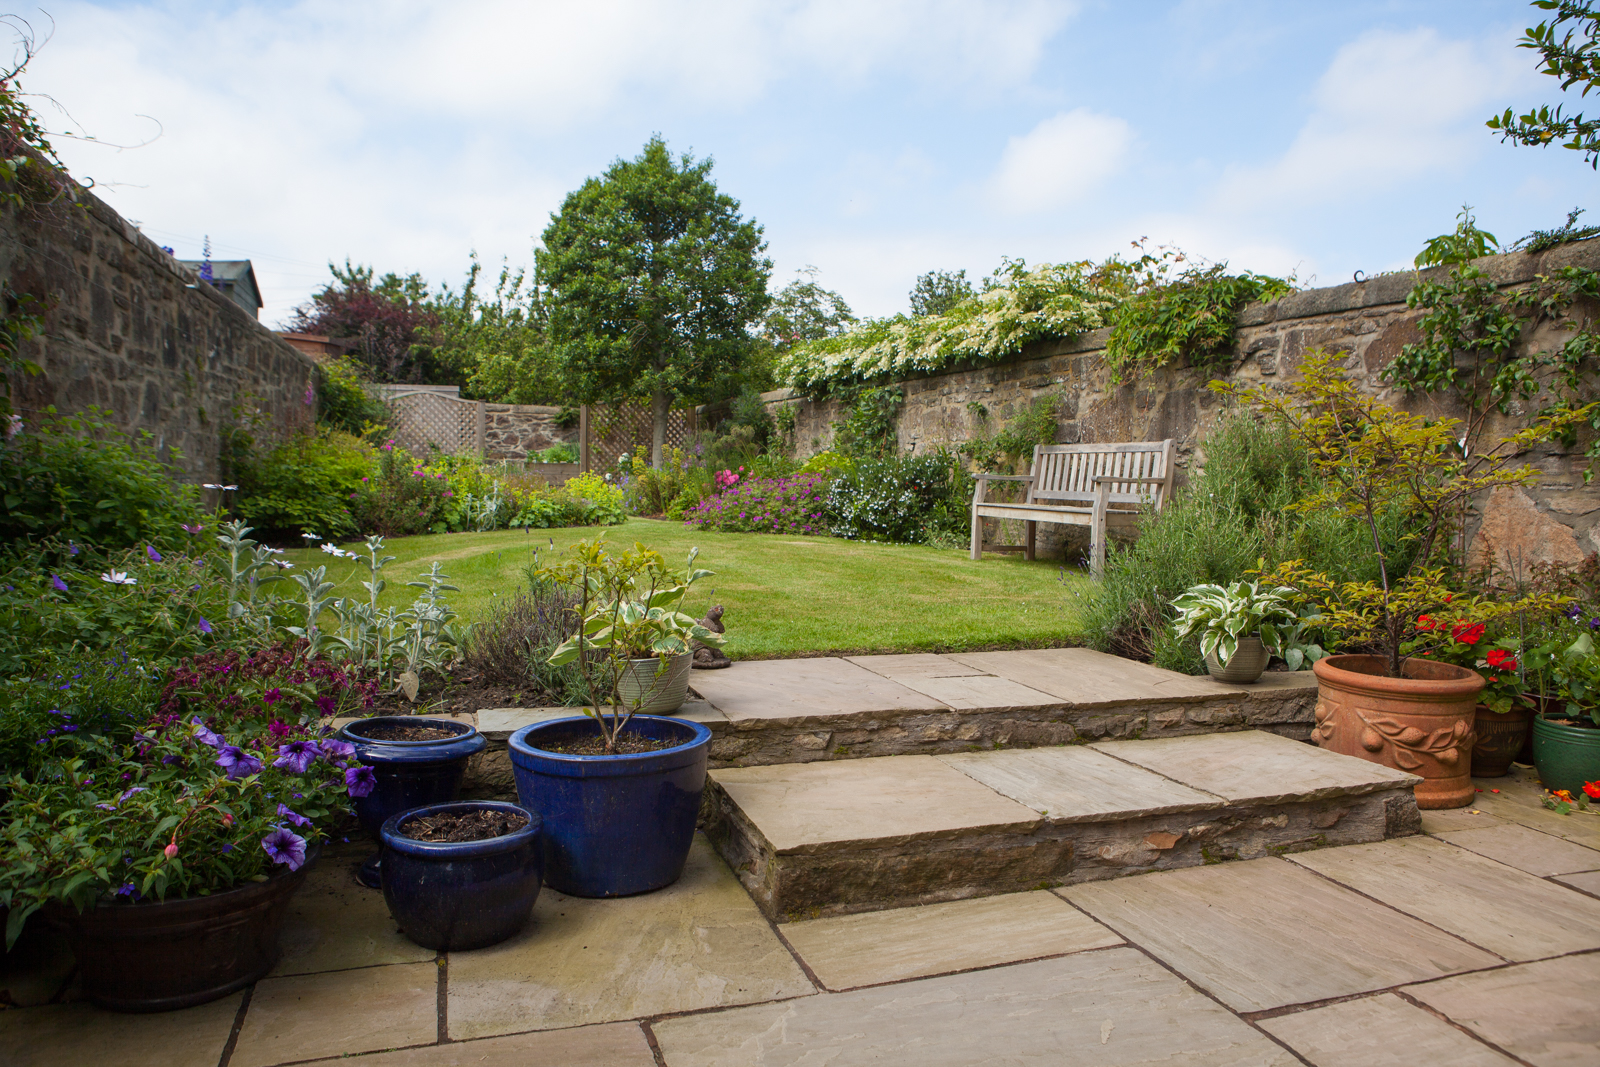 A multi level walled garden with various seating areas